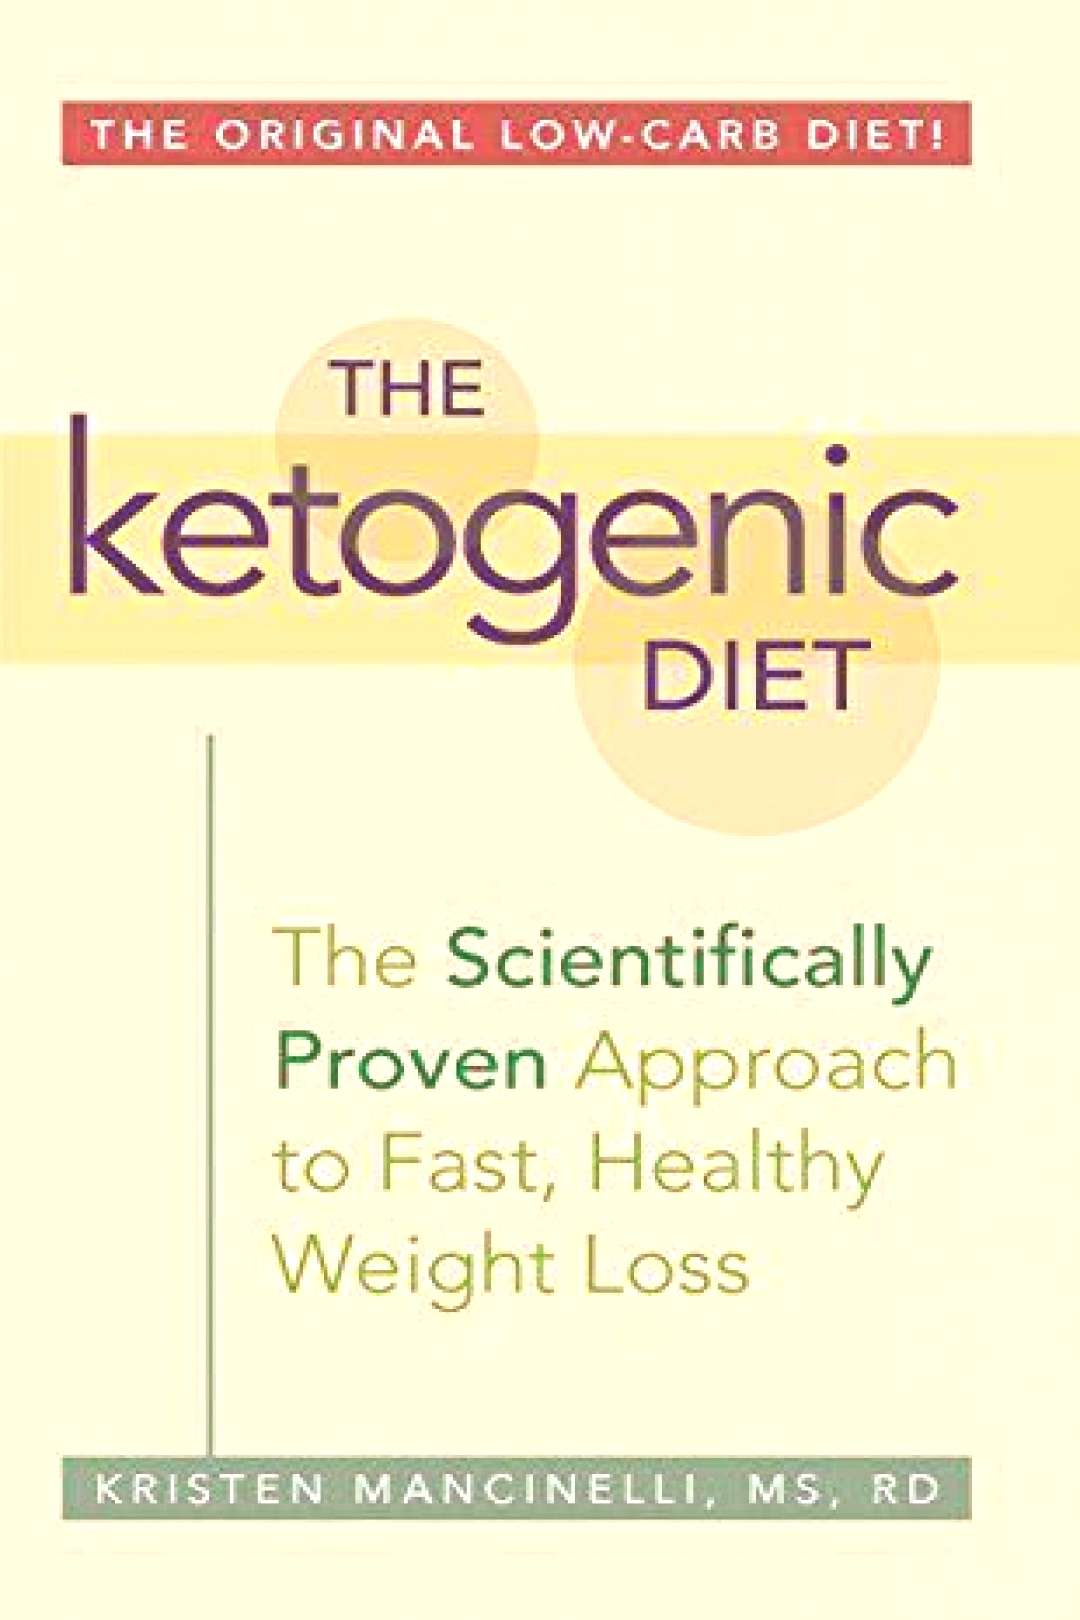 Keto And Intermittent Fasting Should You Do Them Both?